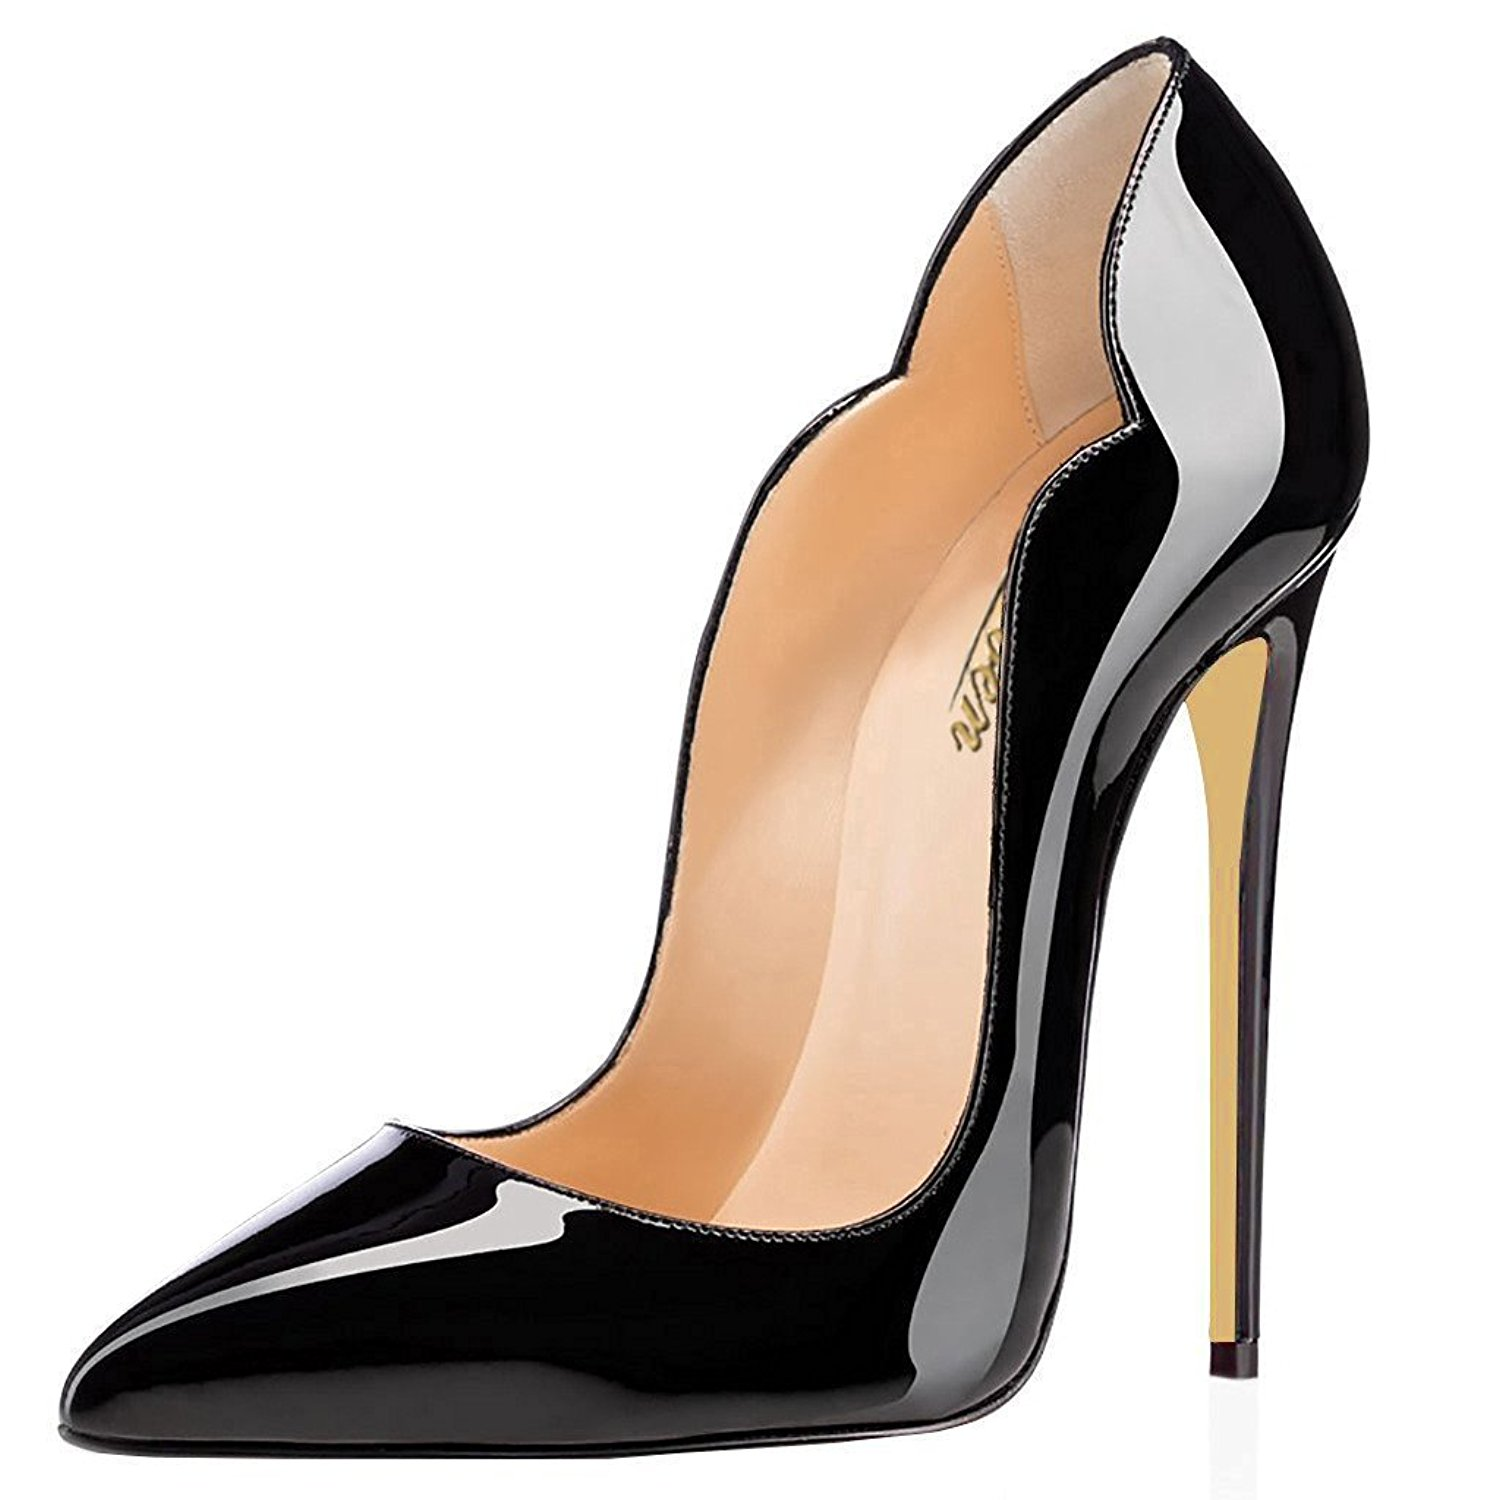 81a48c29a2 Get Quotations · Modemoven Women's Sexy Point Toe High Heels,Patent Leather  Pumps,Wedding Dress Shoes,